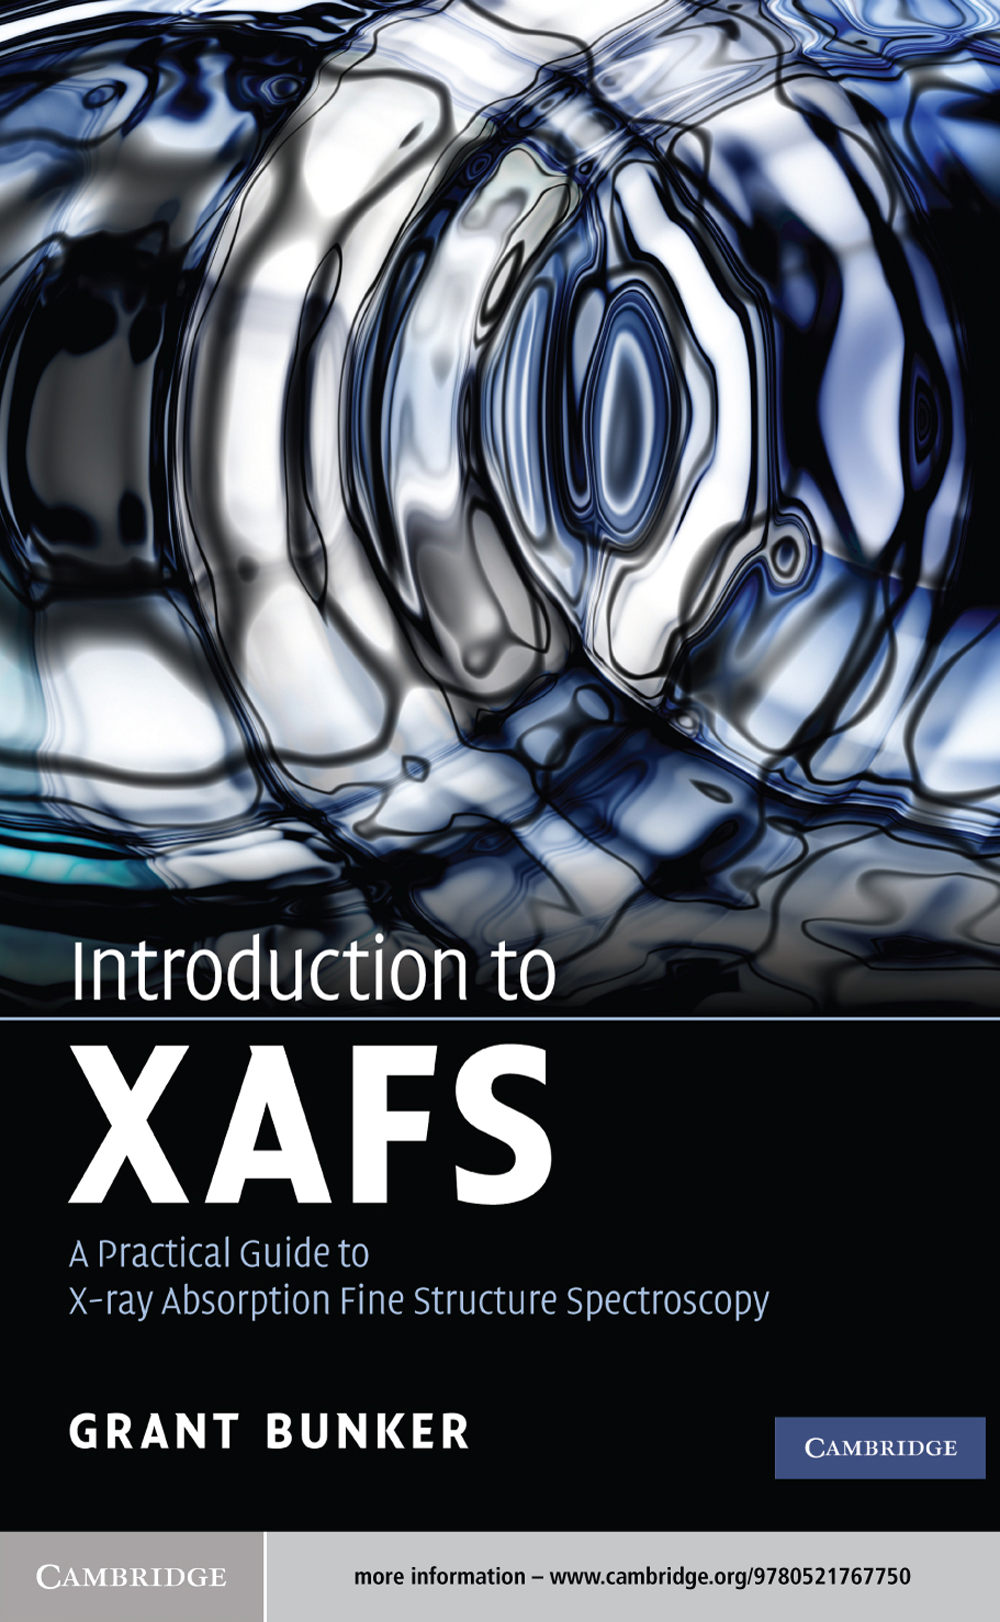 Introduction to XAFS A Practical Guide to X-ray Absorption Fine Structure Spectroscopy